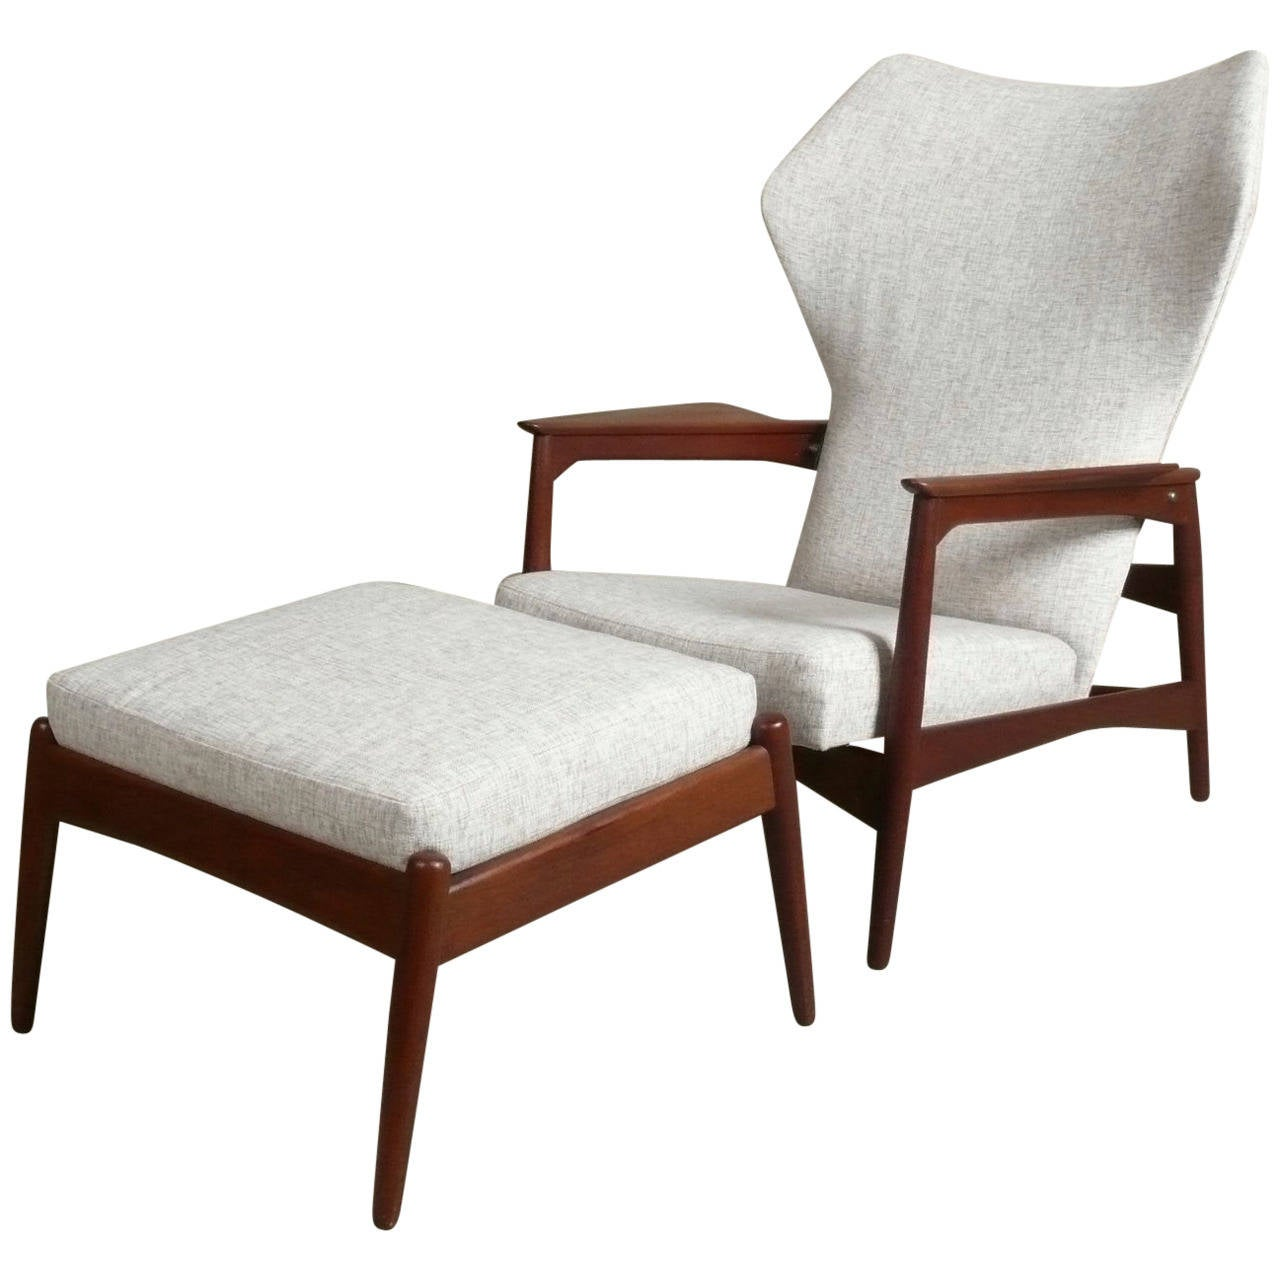 Teak Reclining Lounge Chair And Ottoman From Denmark At 1stdibs